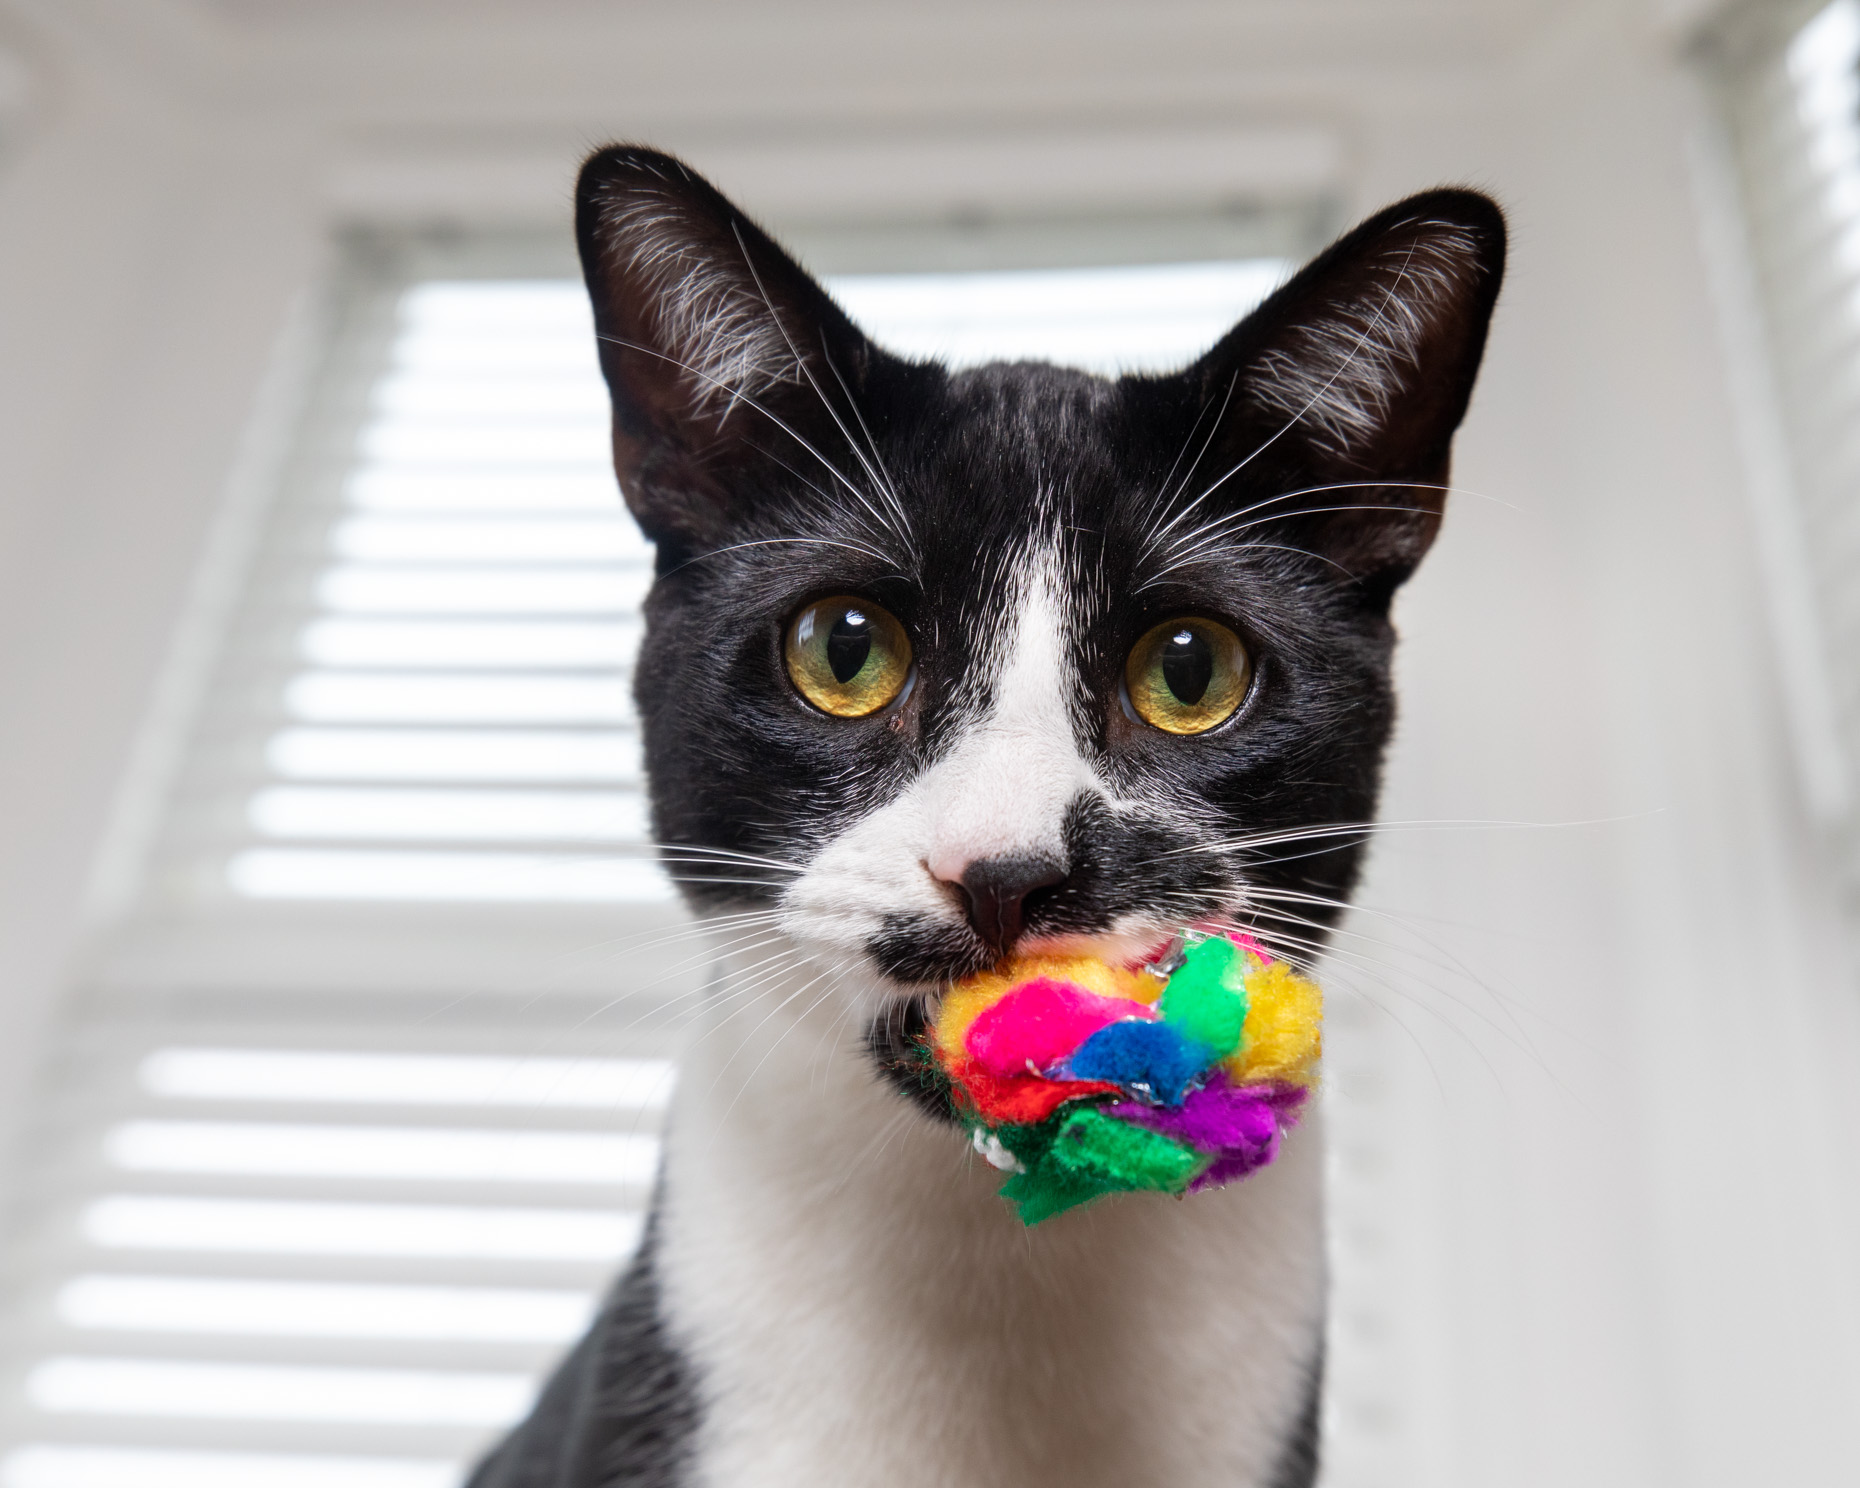 Cat Lifestyle Photography | Cat with Toy in Mouth by Mark Rogers